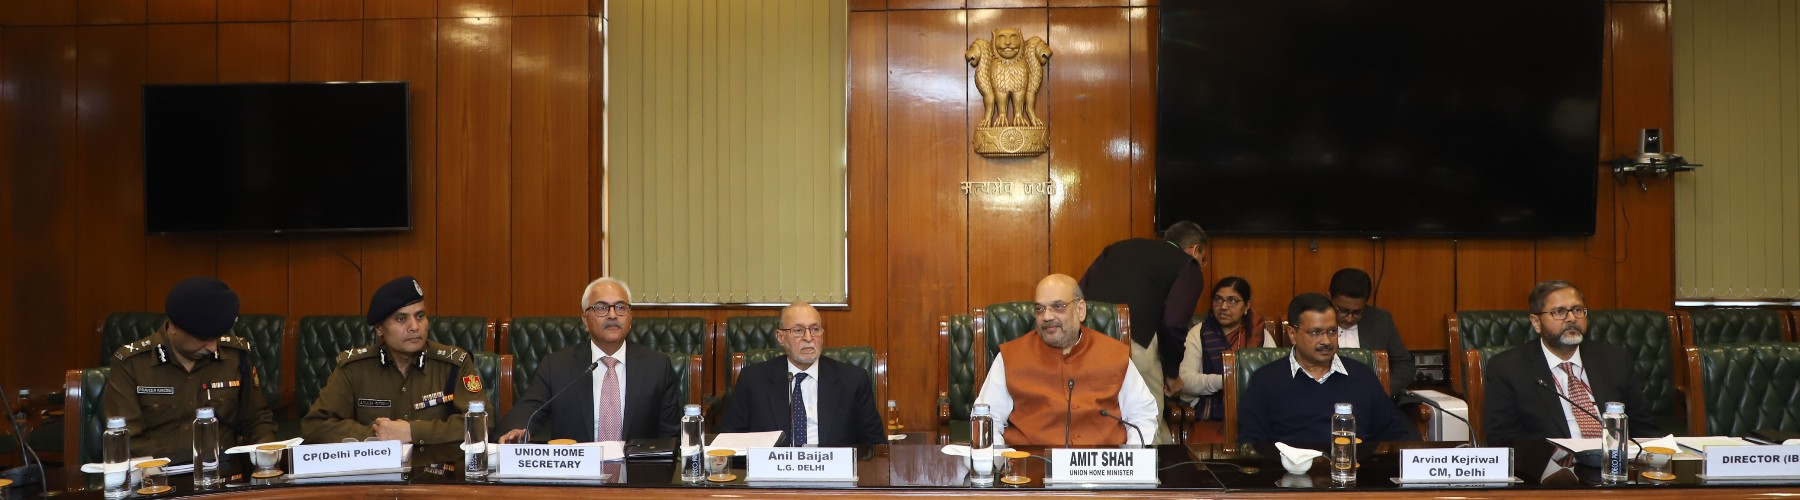 Union Home Minister Shri Amit Shah chairing a meeting in the wake of violence in Delhi, on February 25, 2020. The Lieutenant Governor of Delhi, Shri Anil Baijal and the Chief Minister of Delhi, Shri Arvind Kejriwal were also present